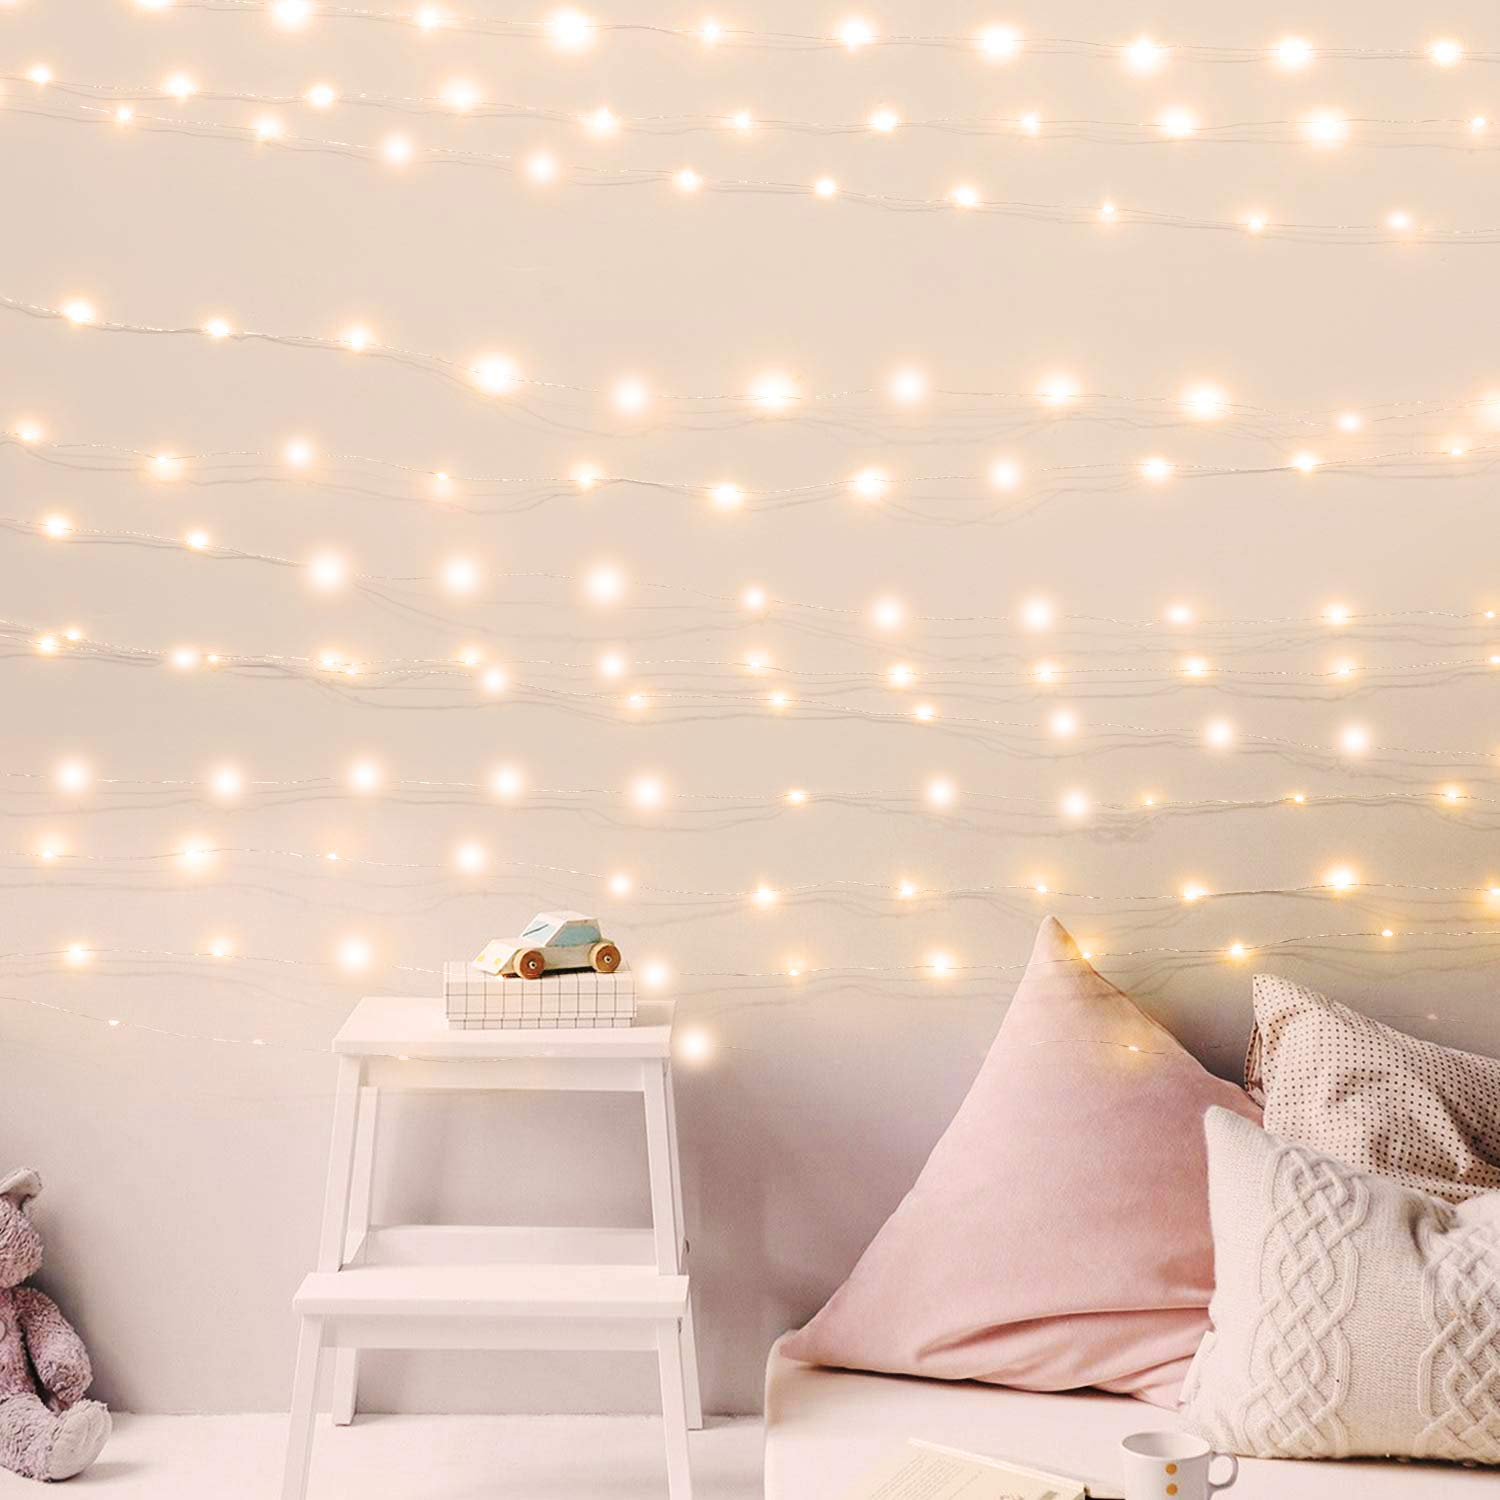 Usb Fairy String Lights With Power Adaptor 66ft 200 Led Firefly Lights For Bedroom Wall Ceiling Christmas Tree Wreath Craft Wedding Party Decoration Warm White